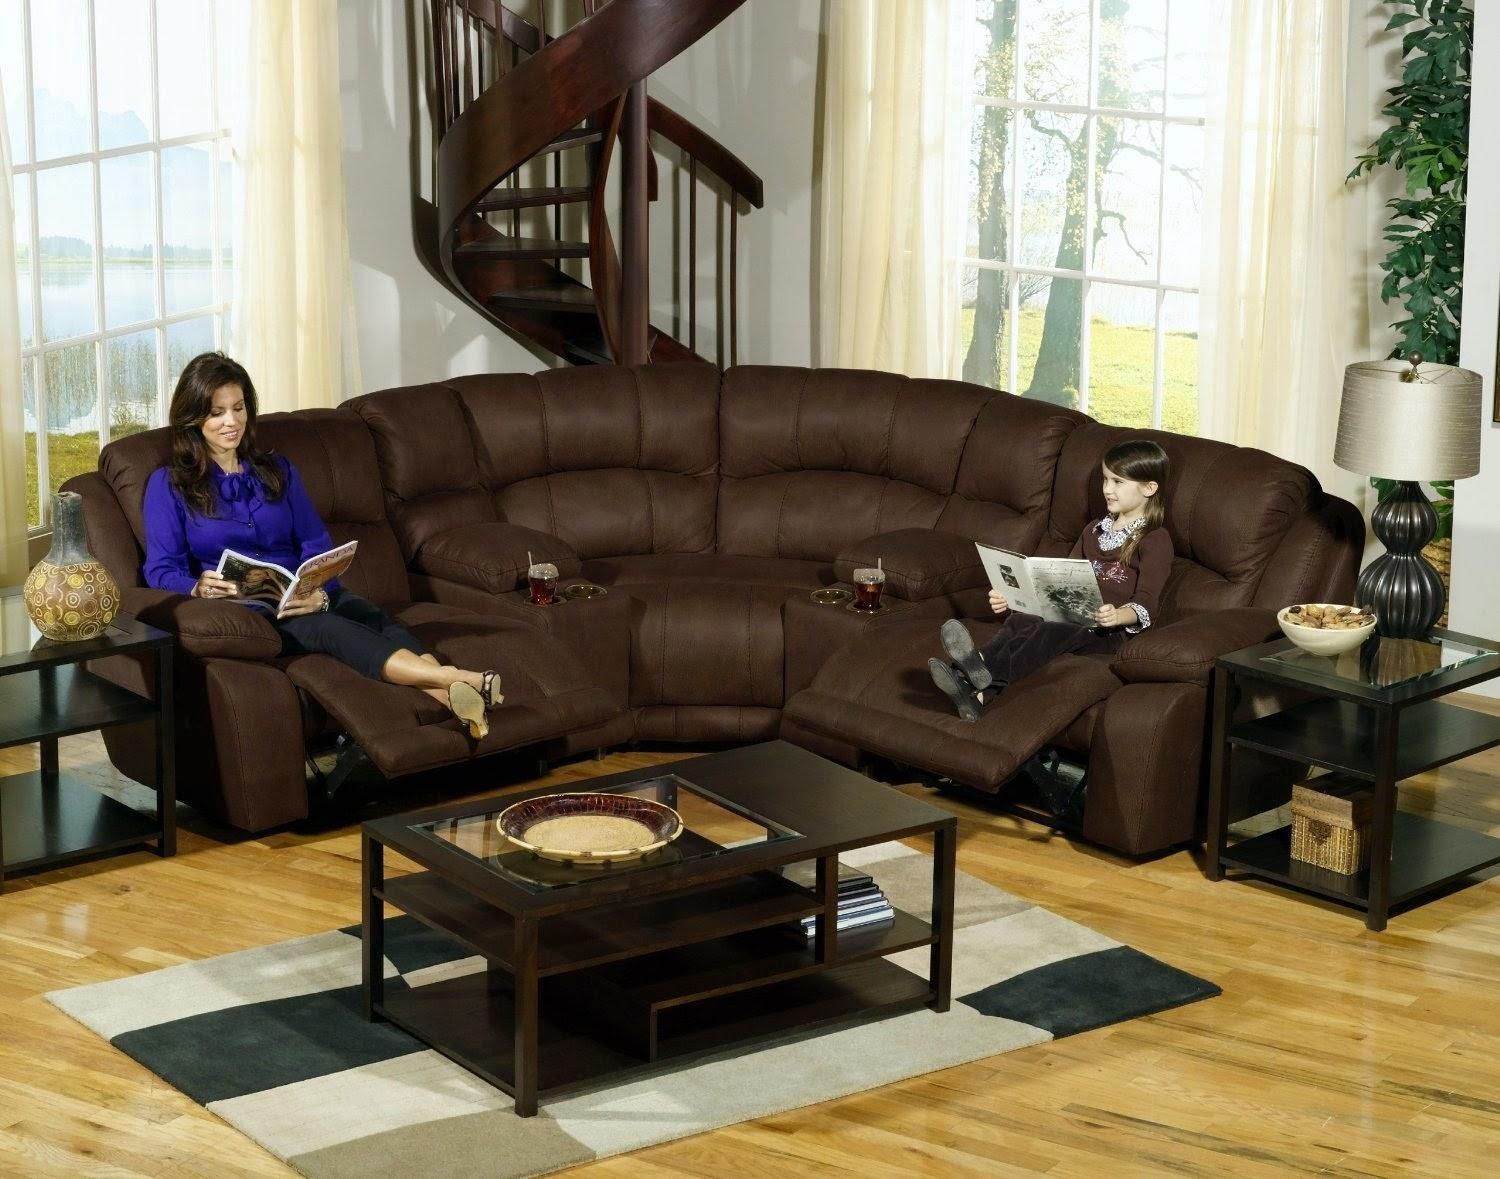 Furniture: Fantastic Sectional Couches With Recliners For Your With Sectional Sofas For Small Spaces With Recliners (Image 3 of 20)